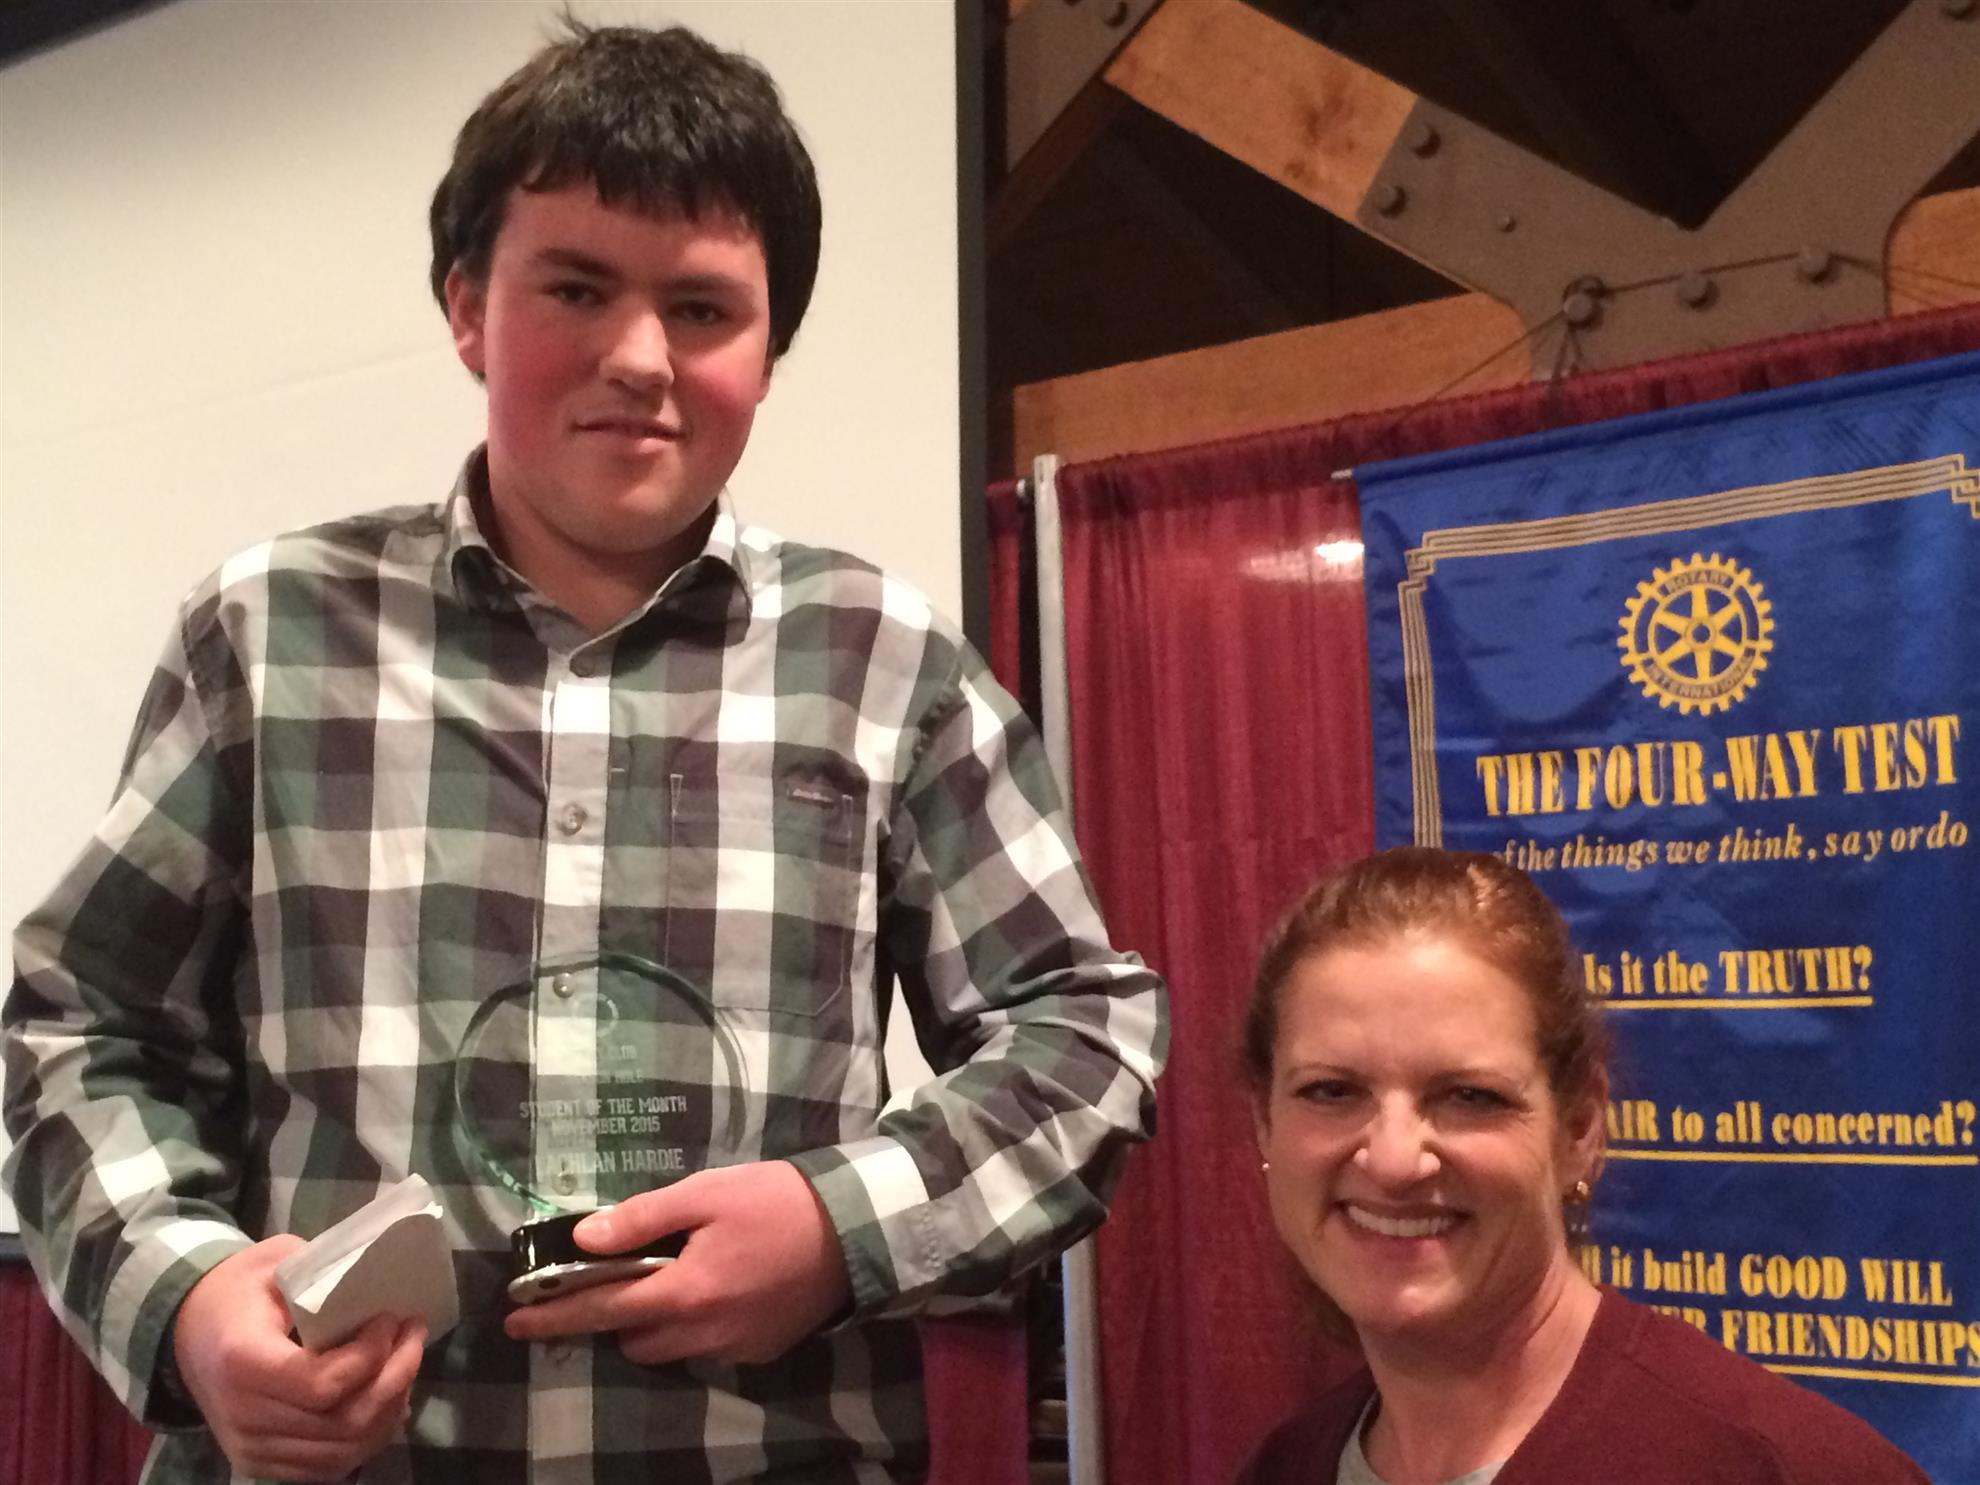 Summit High School Student of the Month Lachlan Hardie receives his award from club President Clare Payne-Symmons